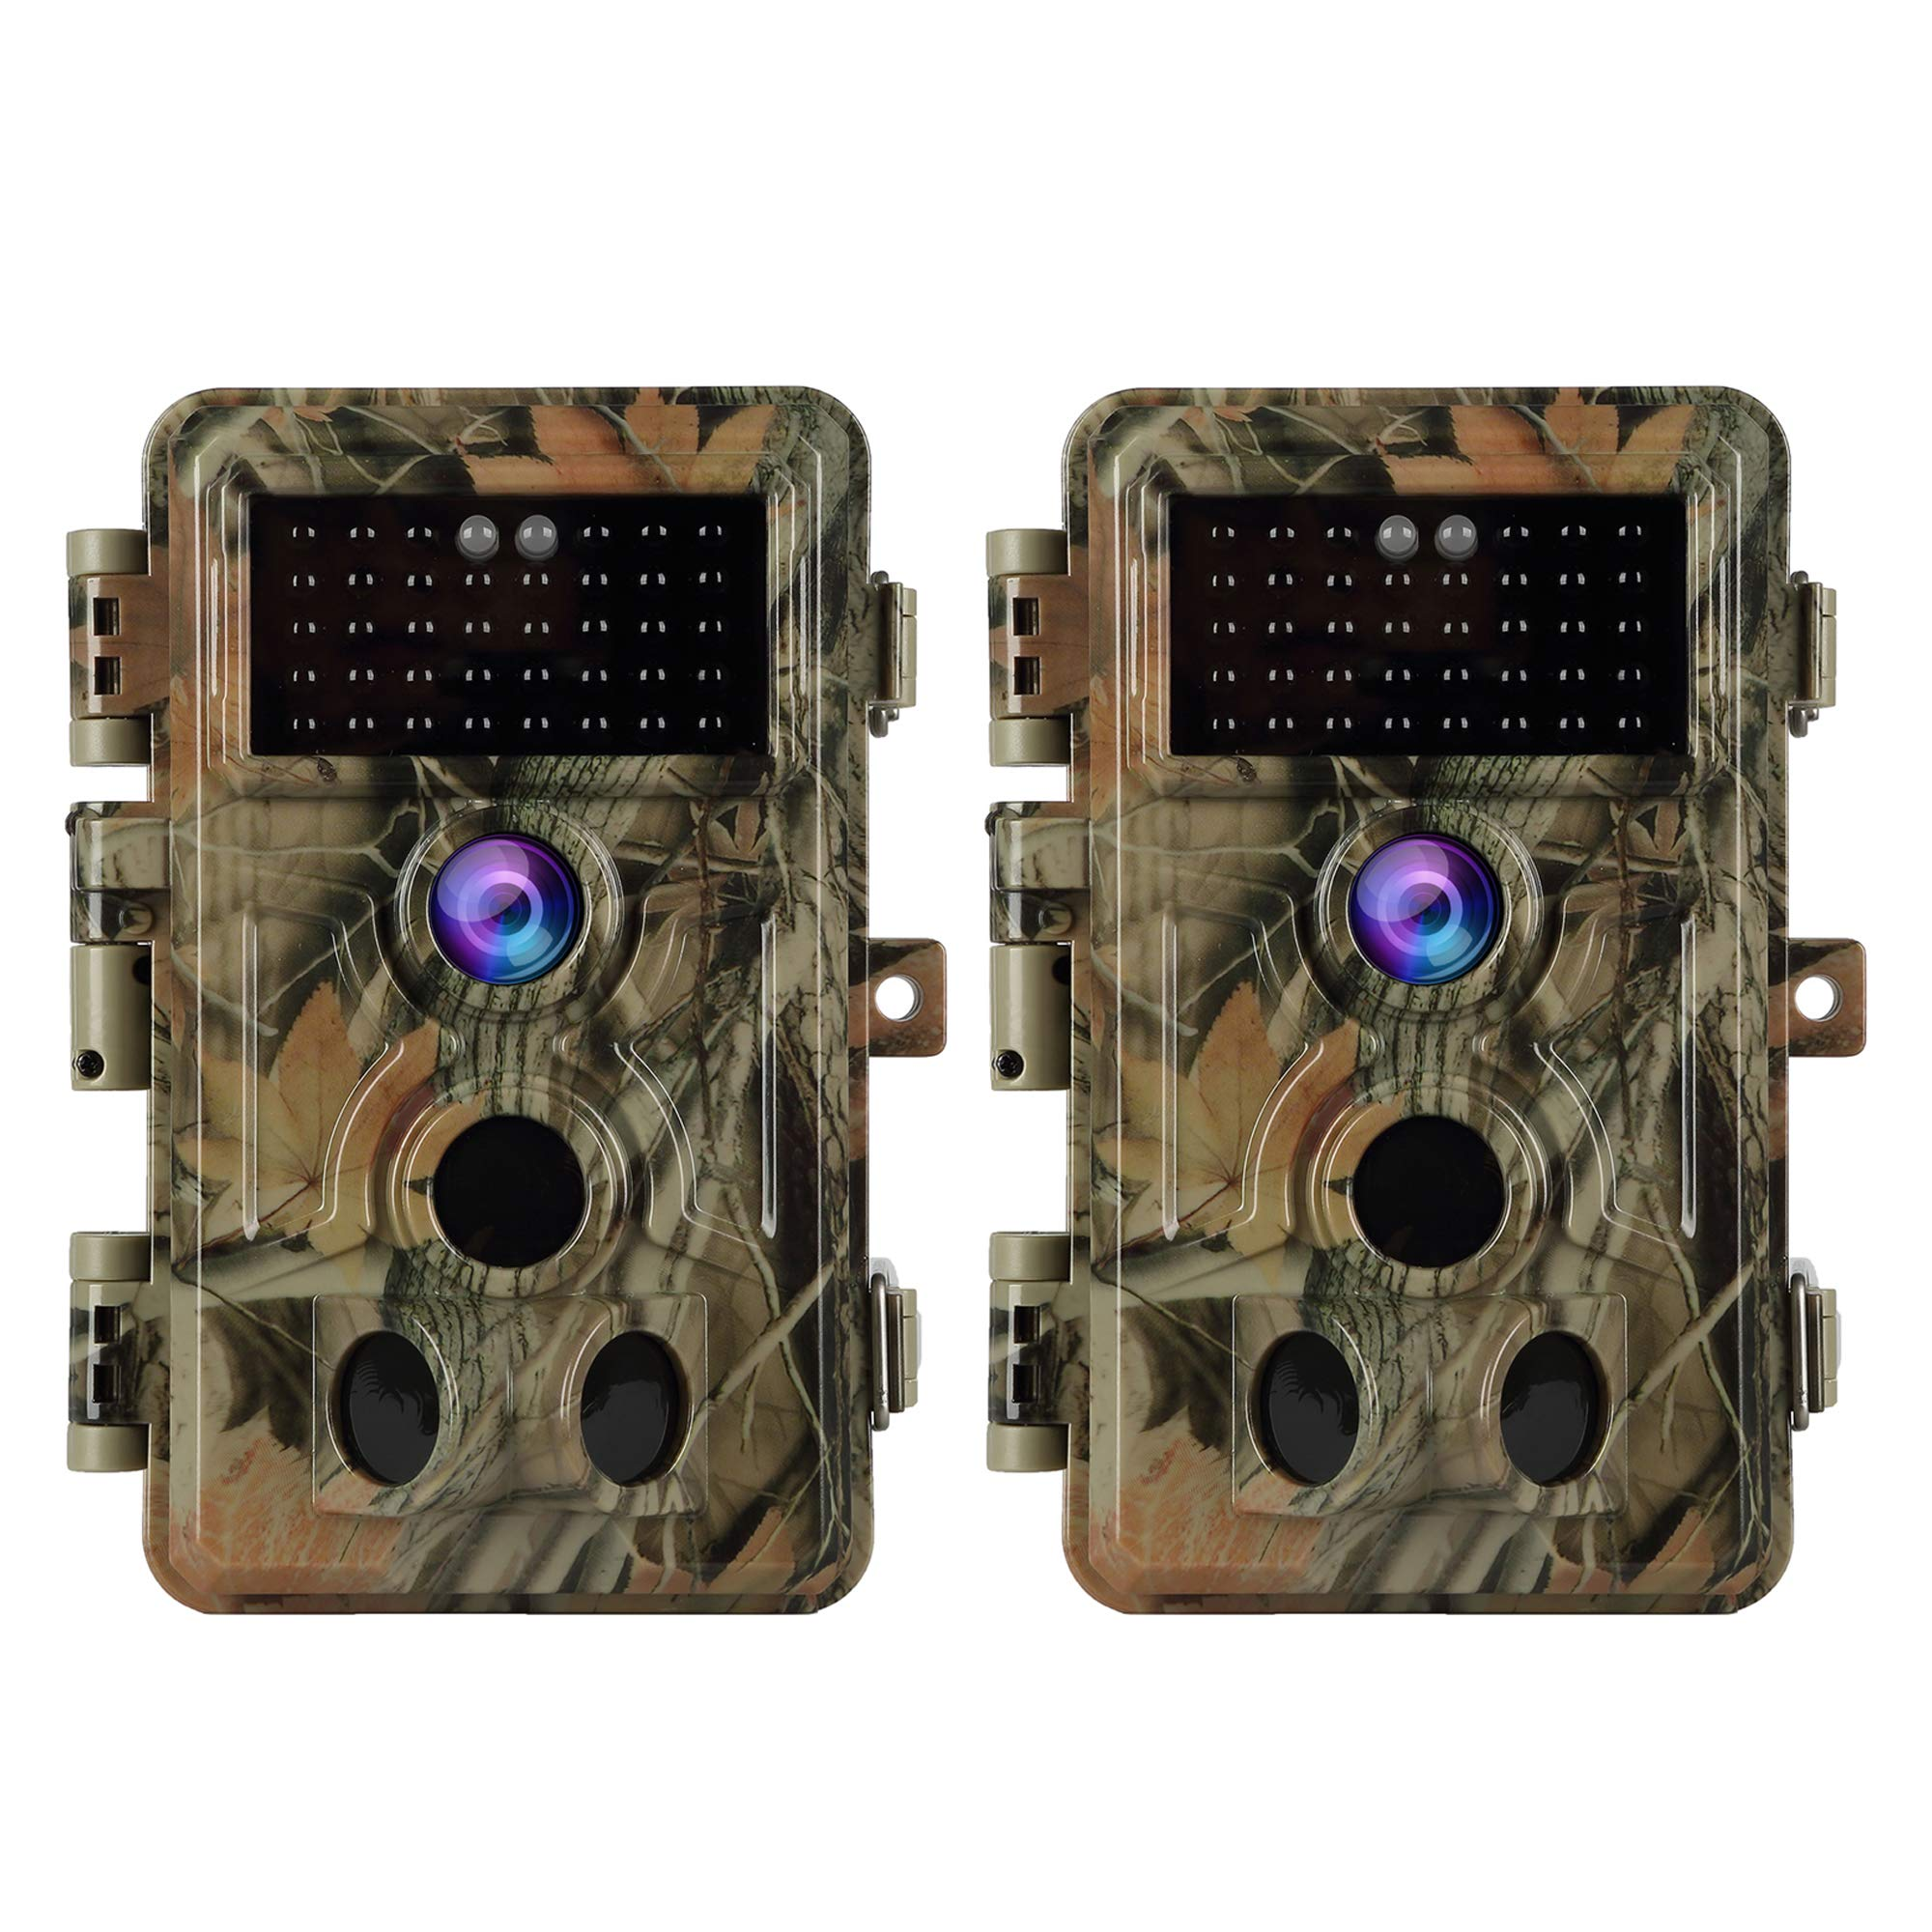 BlazeVideo 2-Pack 16MP 1080P Trail Game Cameras with Night Vision Motion Activated Waterproof IP66 No Glow Infrared IR Wildlife Deer Hunting Cam Video Tracking & Monitoring 0.2S Trigger Speed